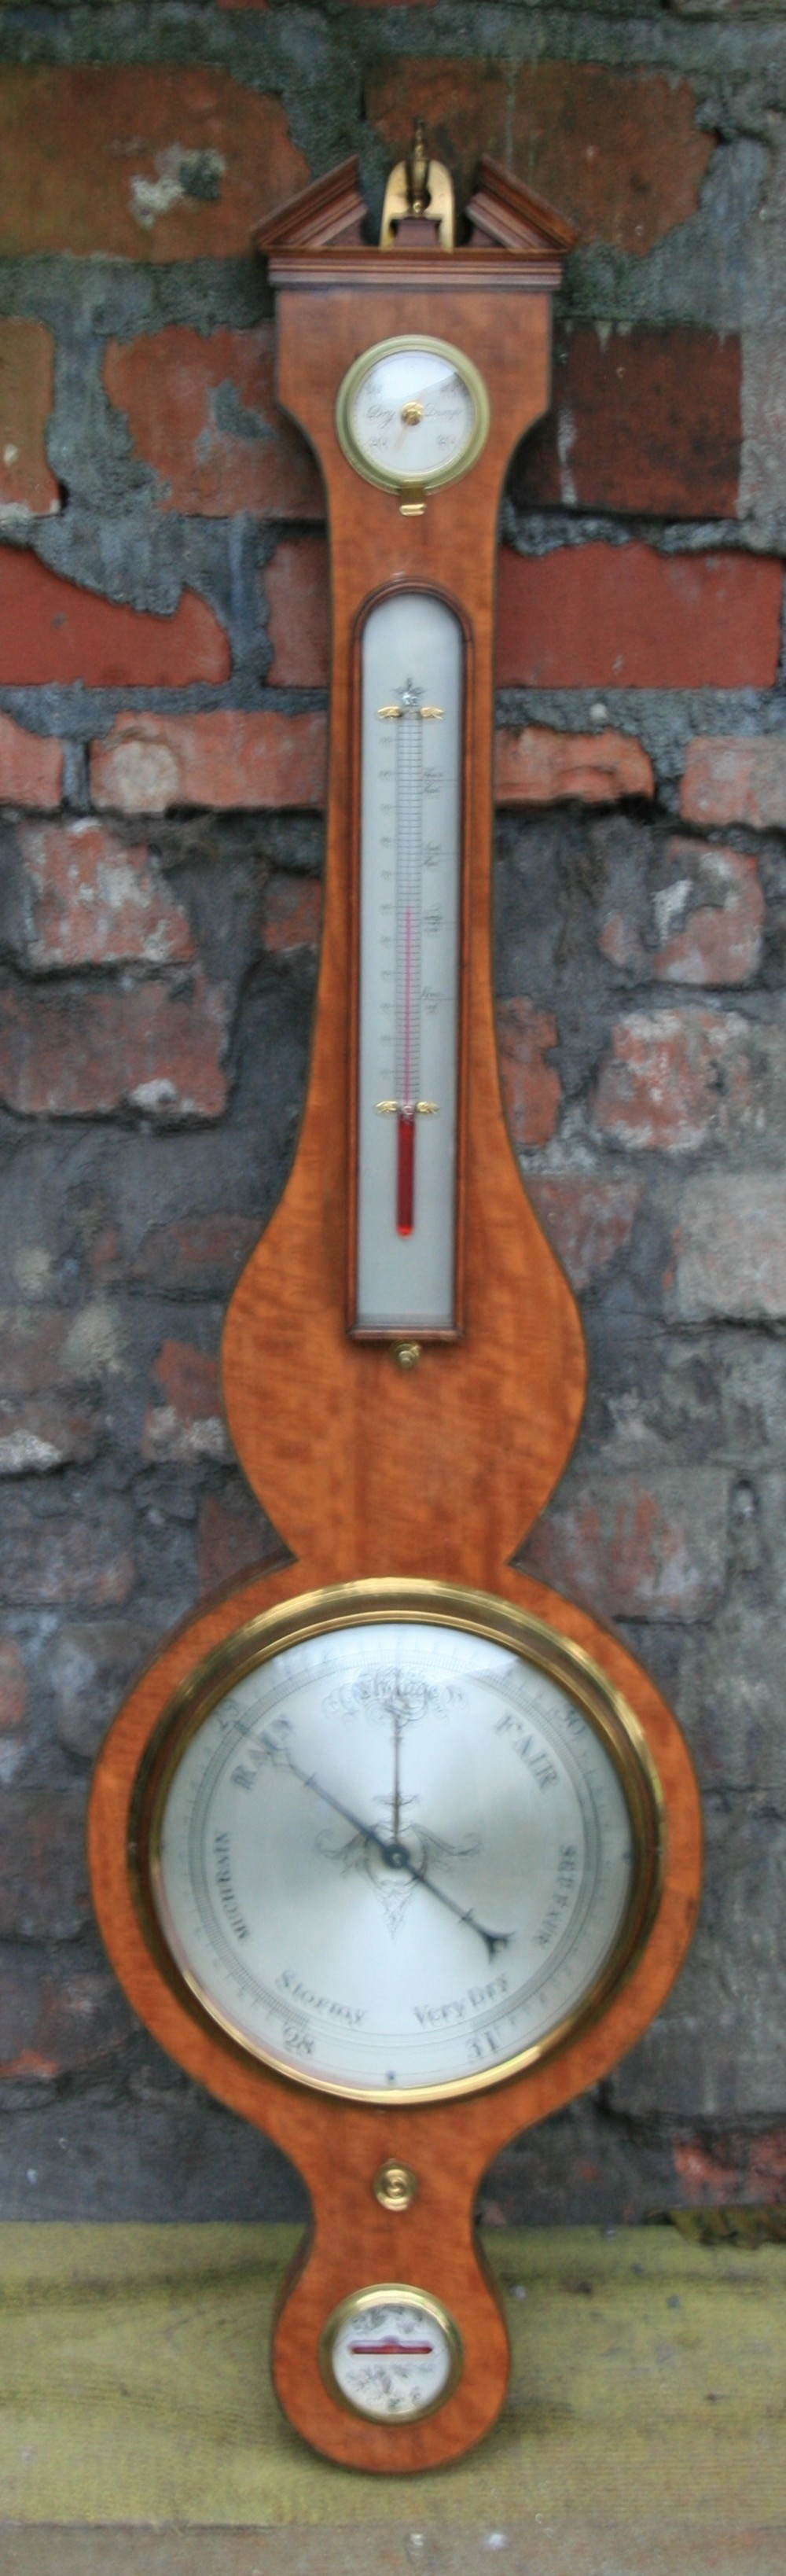 c19th satinwood barometer